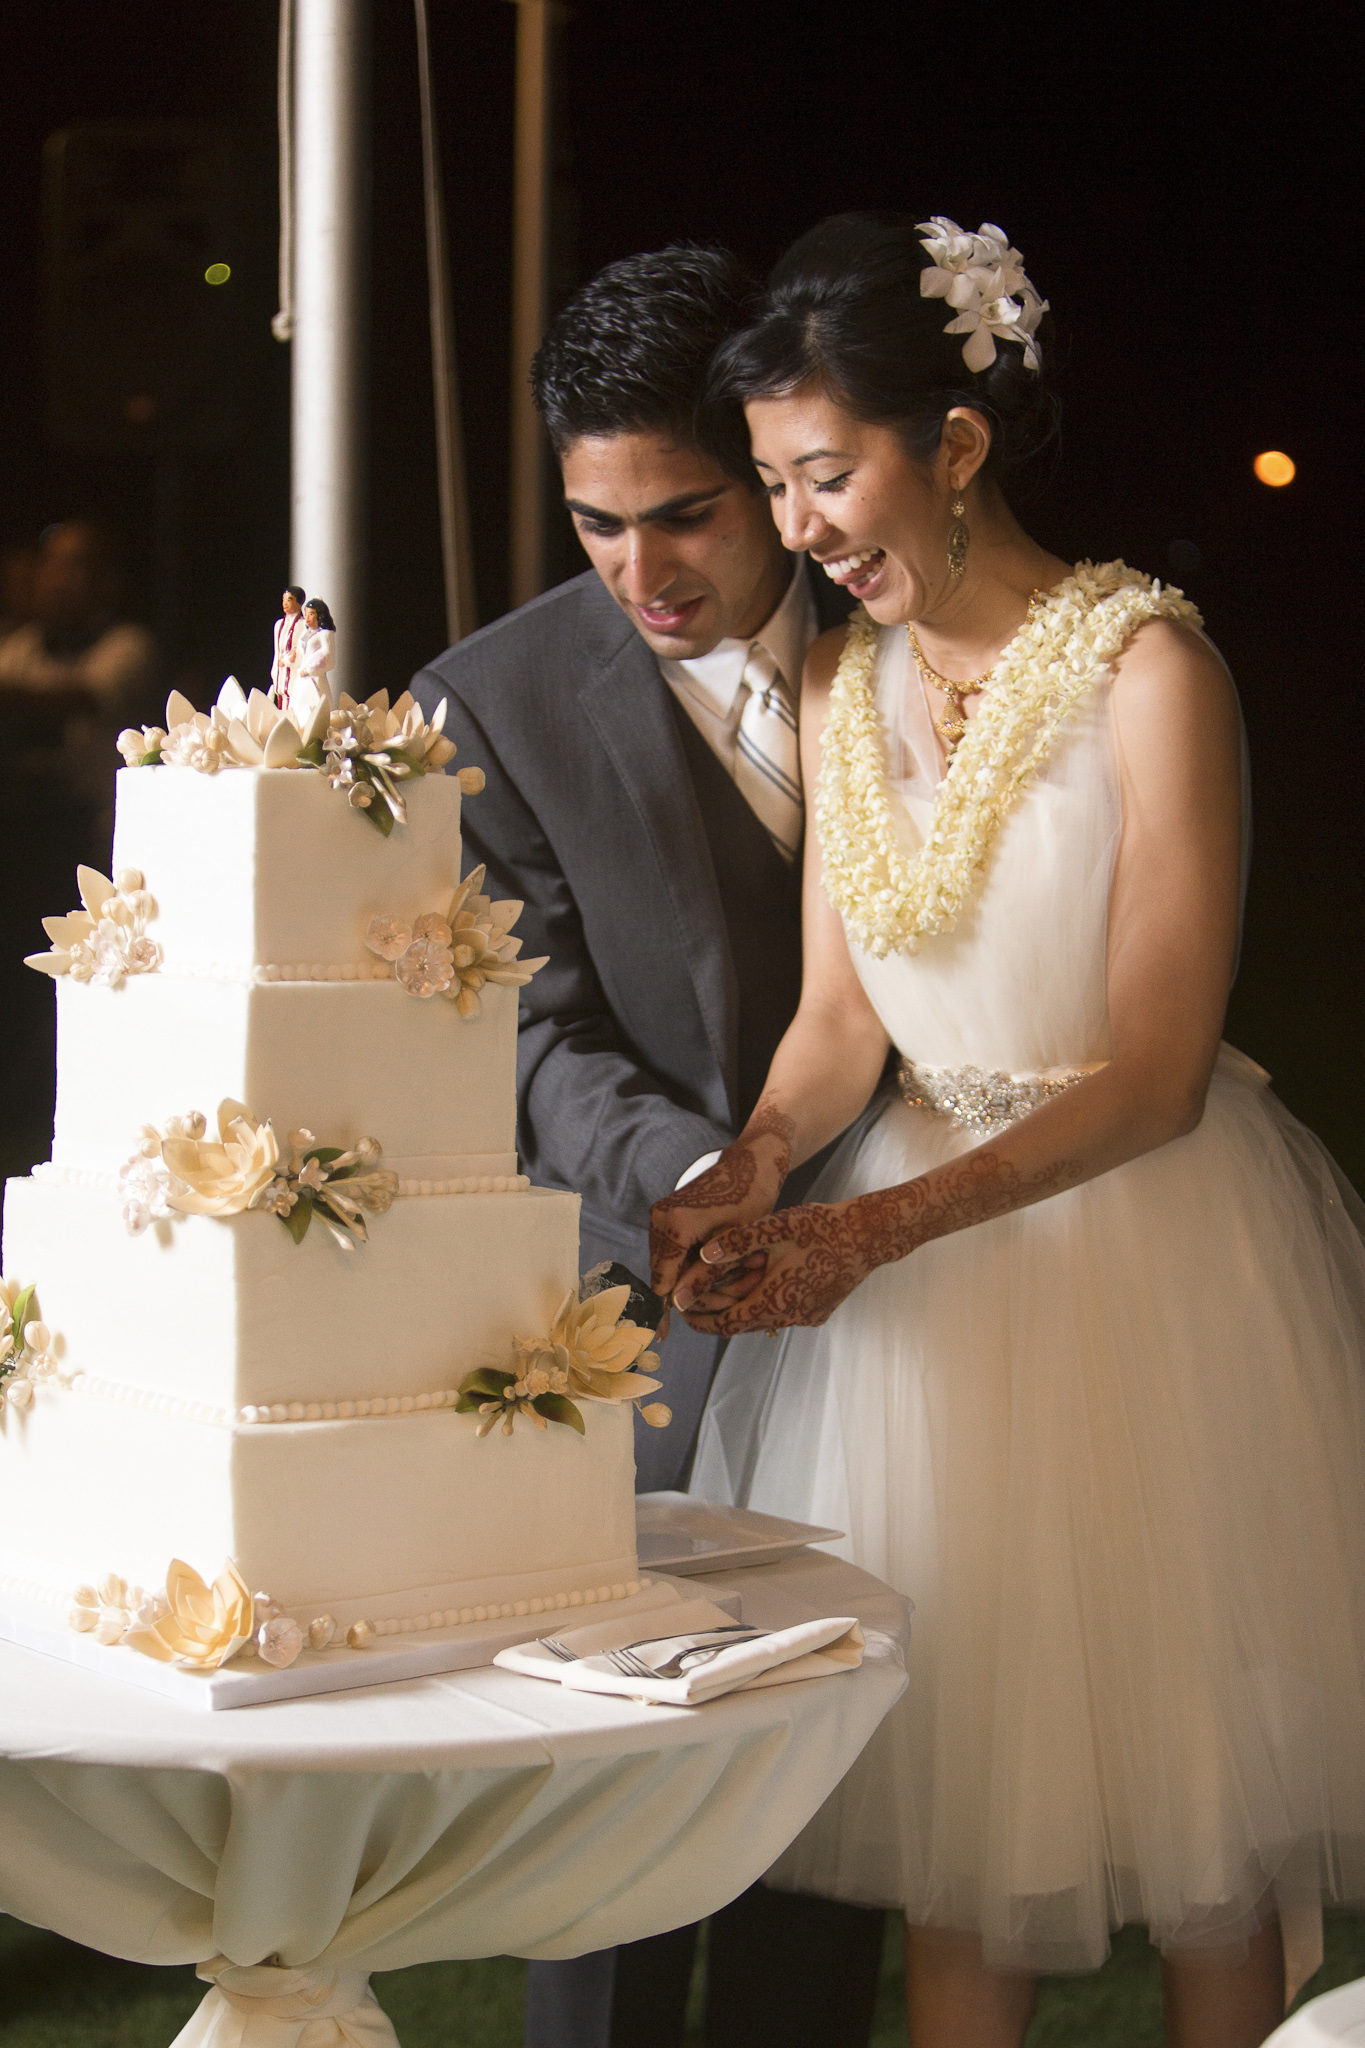 Cake cutting at hindu wedding